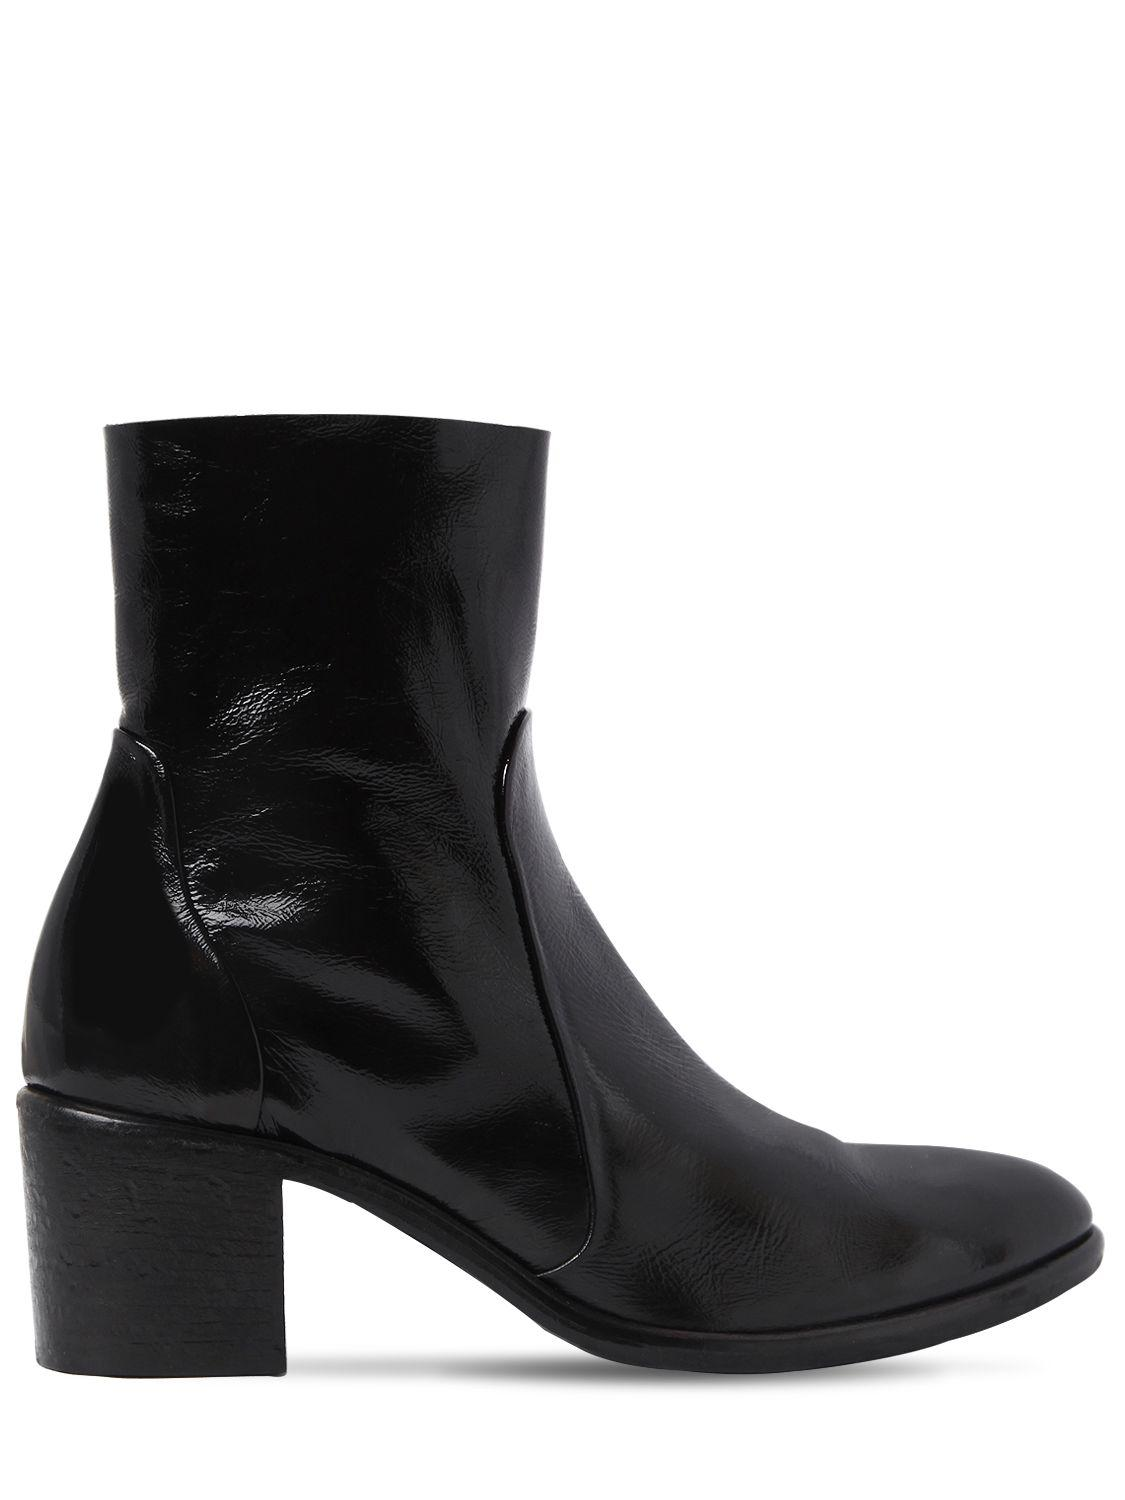 Strategia 50MM NAPLACK PATENT LEATHER ANKLE BOOTS rHdFW2B